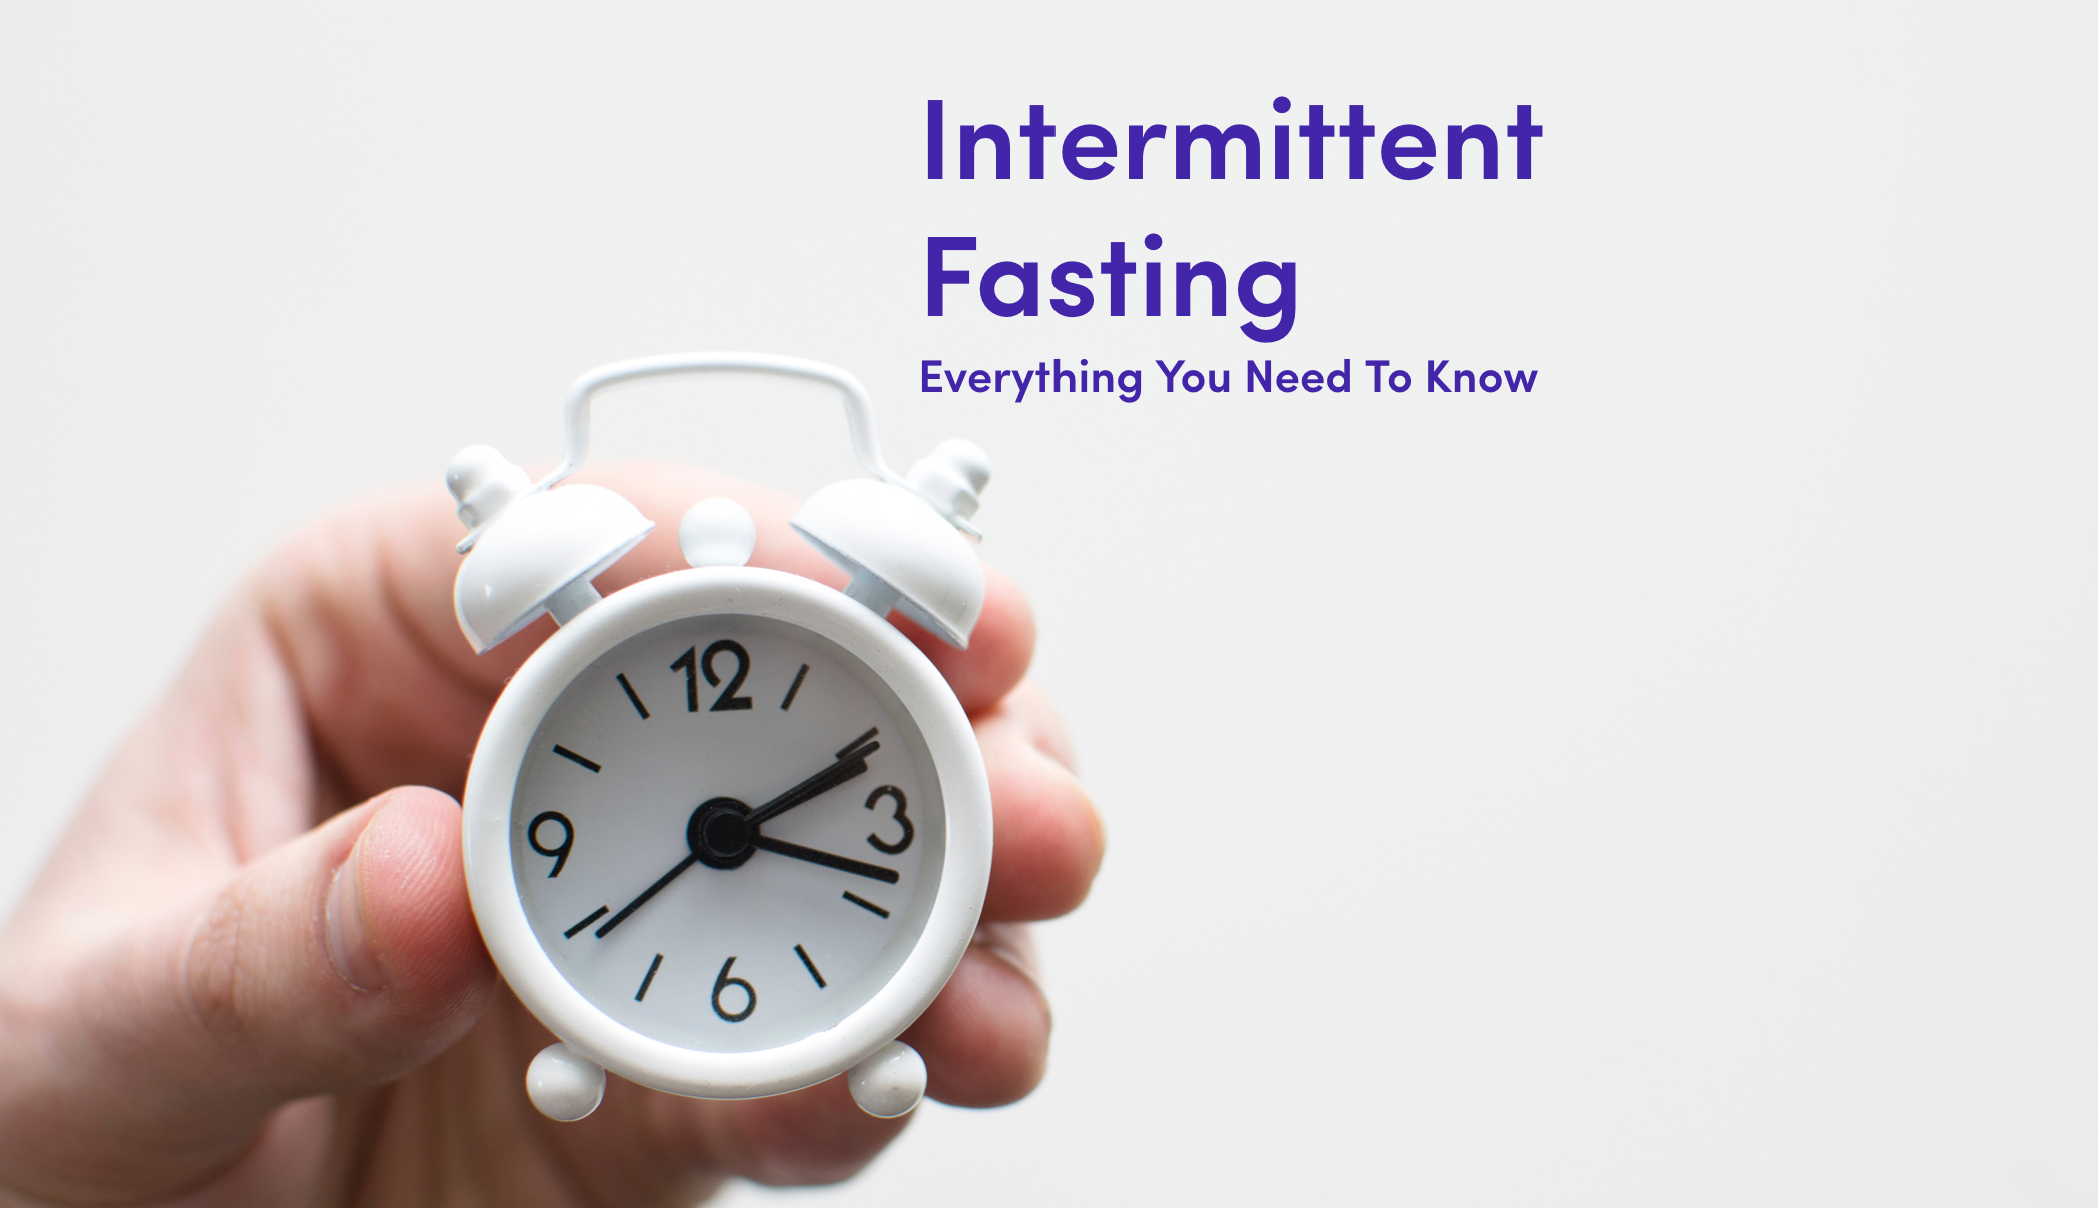 Intermittent Fasting & Its Science Based Benefits